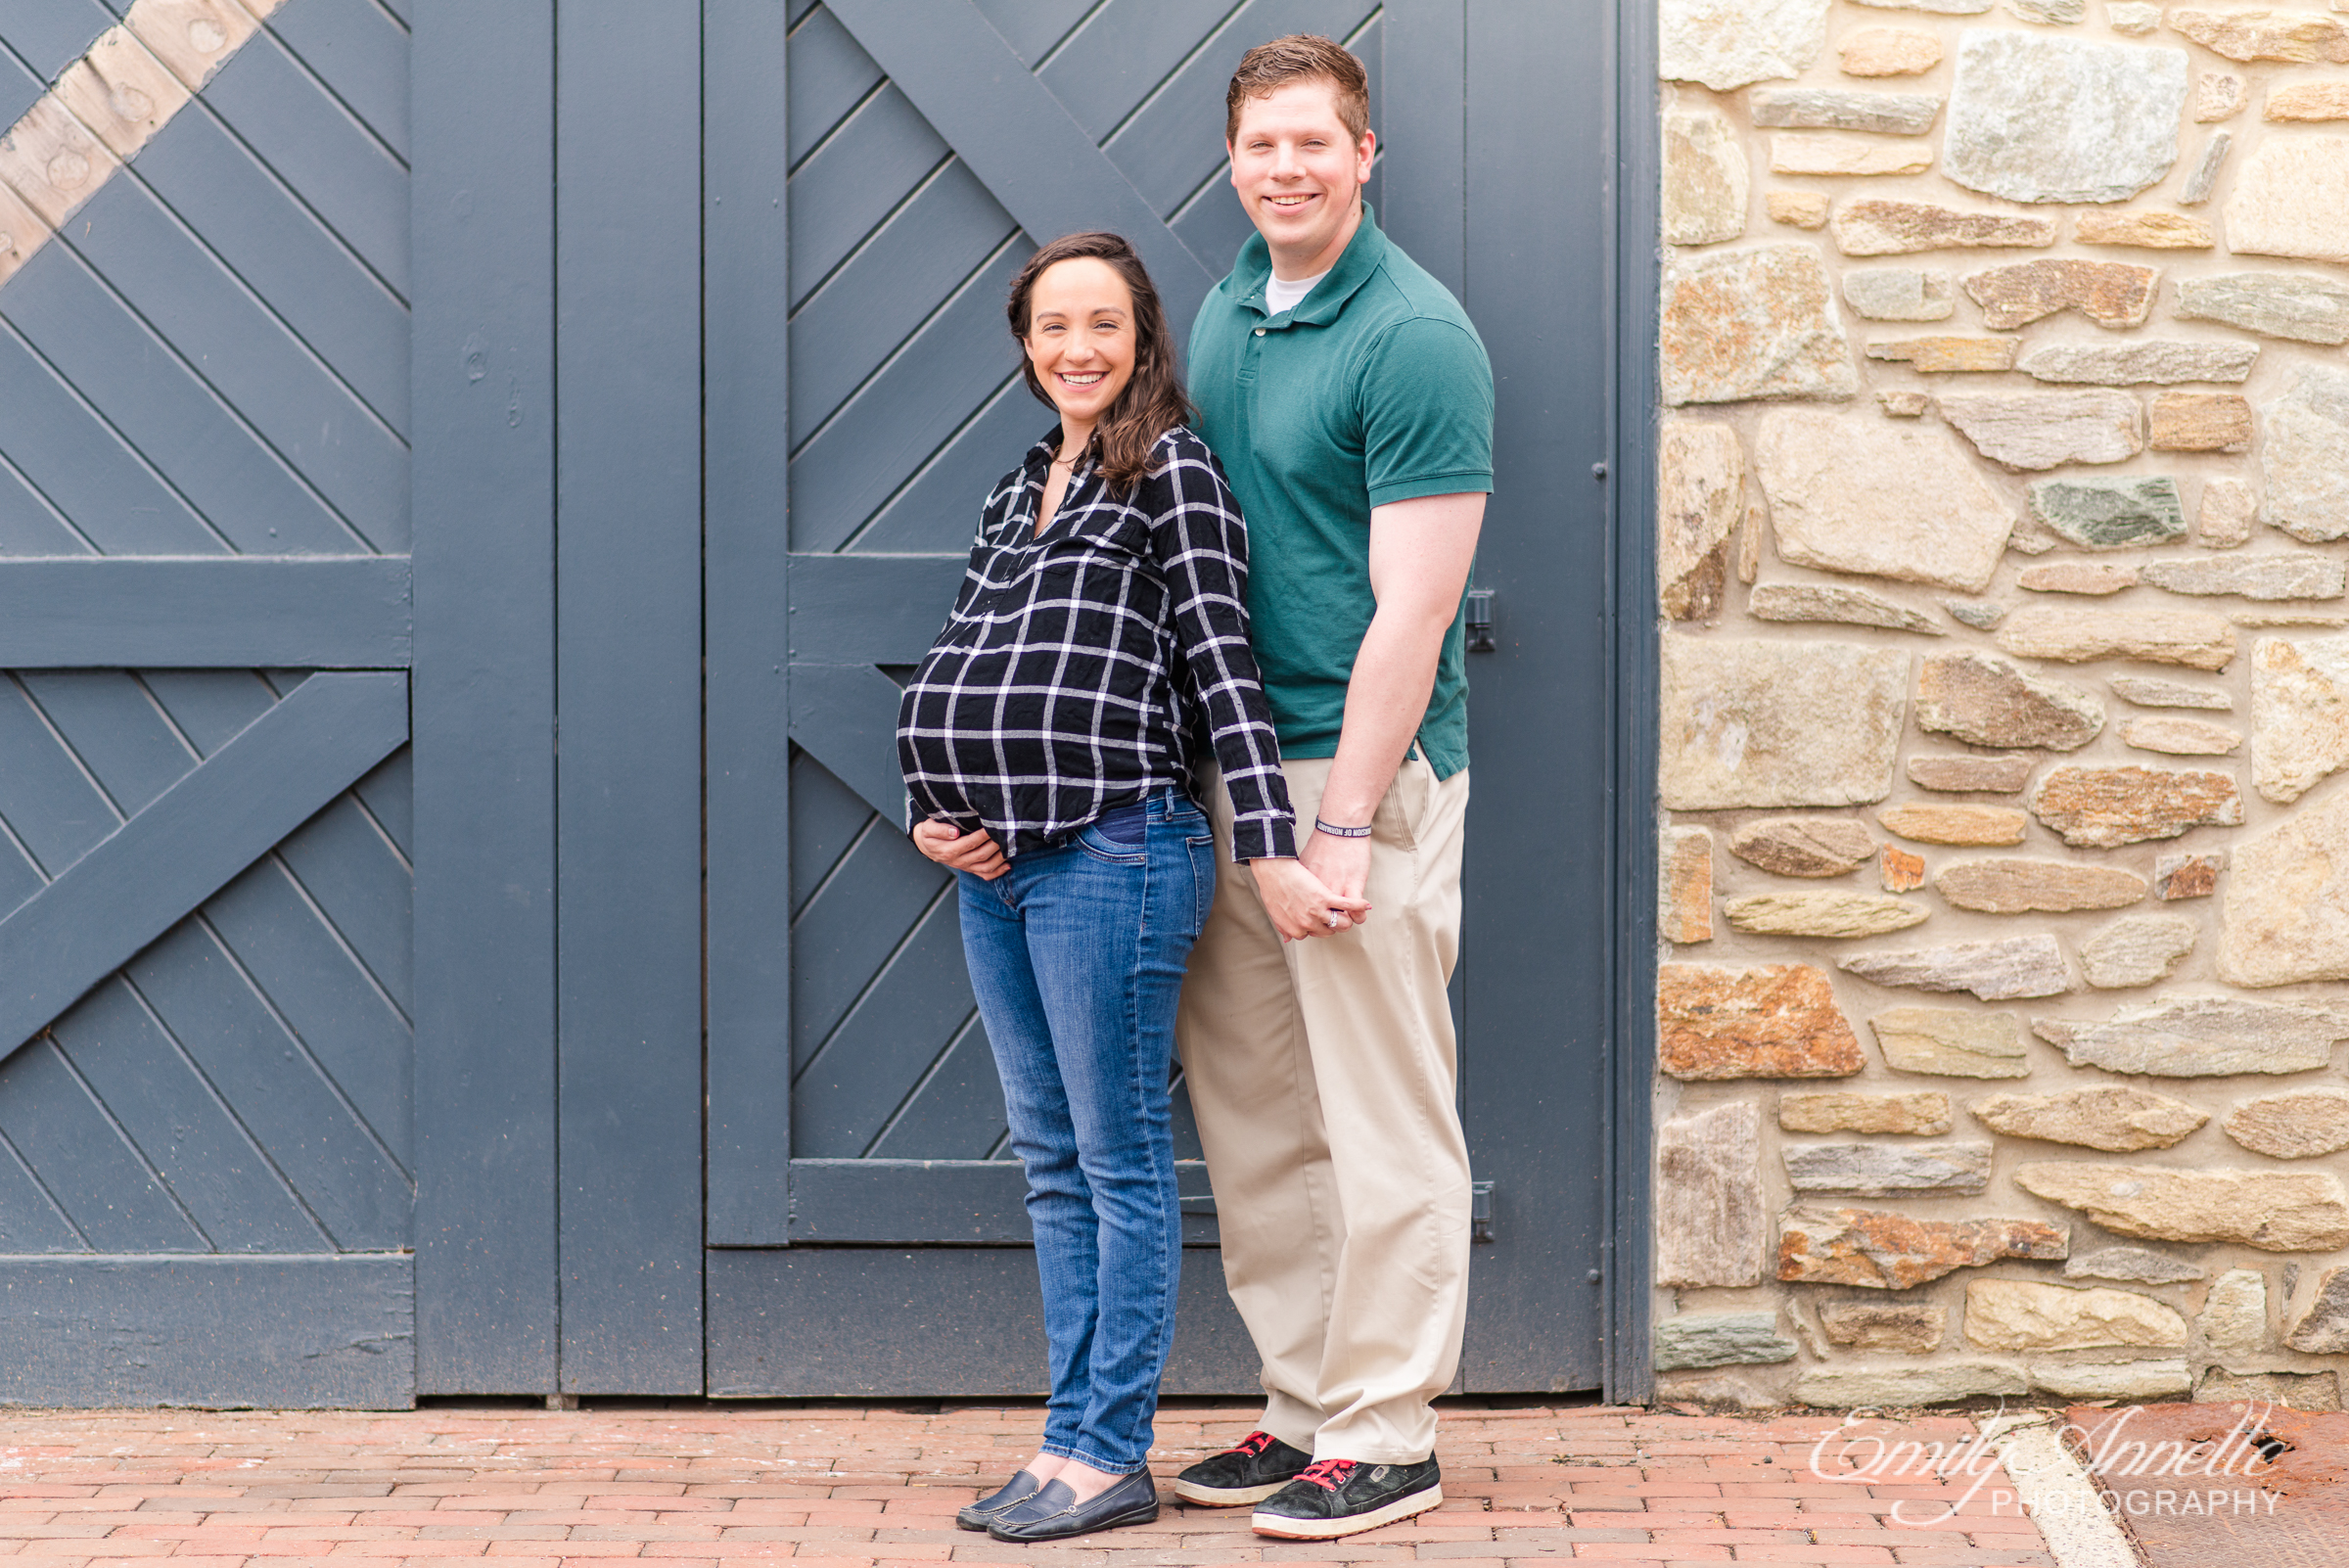 A pregnant woman poses with her husband for maternity photos in Old Town Alexandria wearing a fun casual shirt and jeans